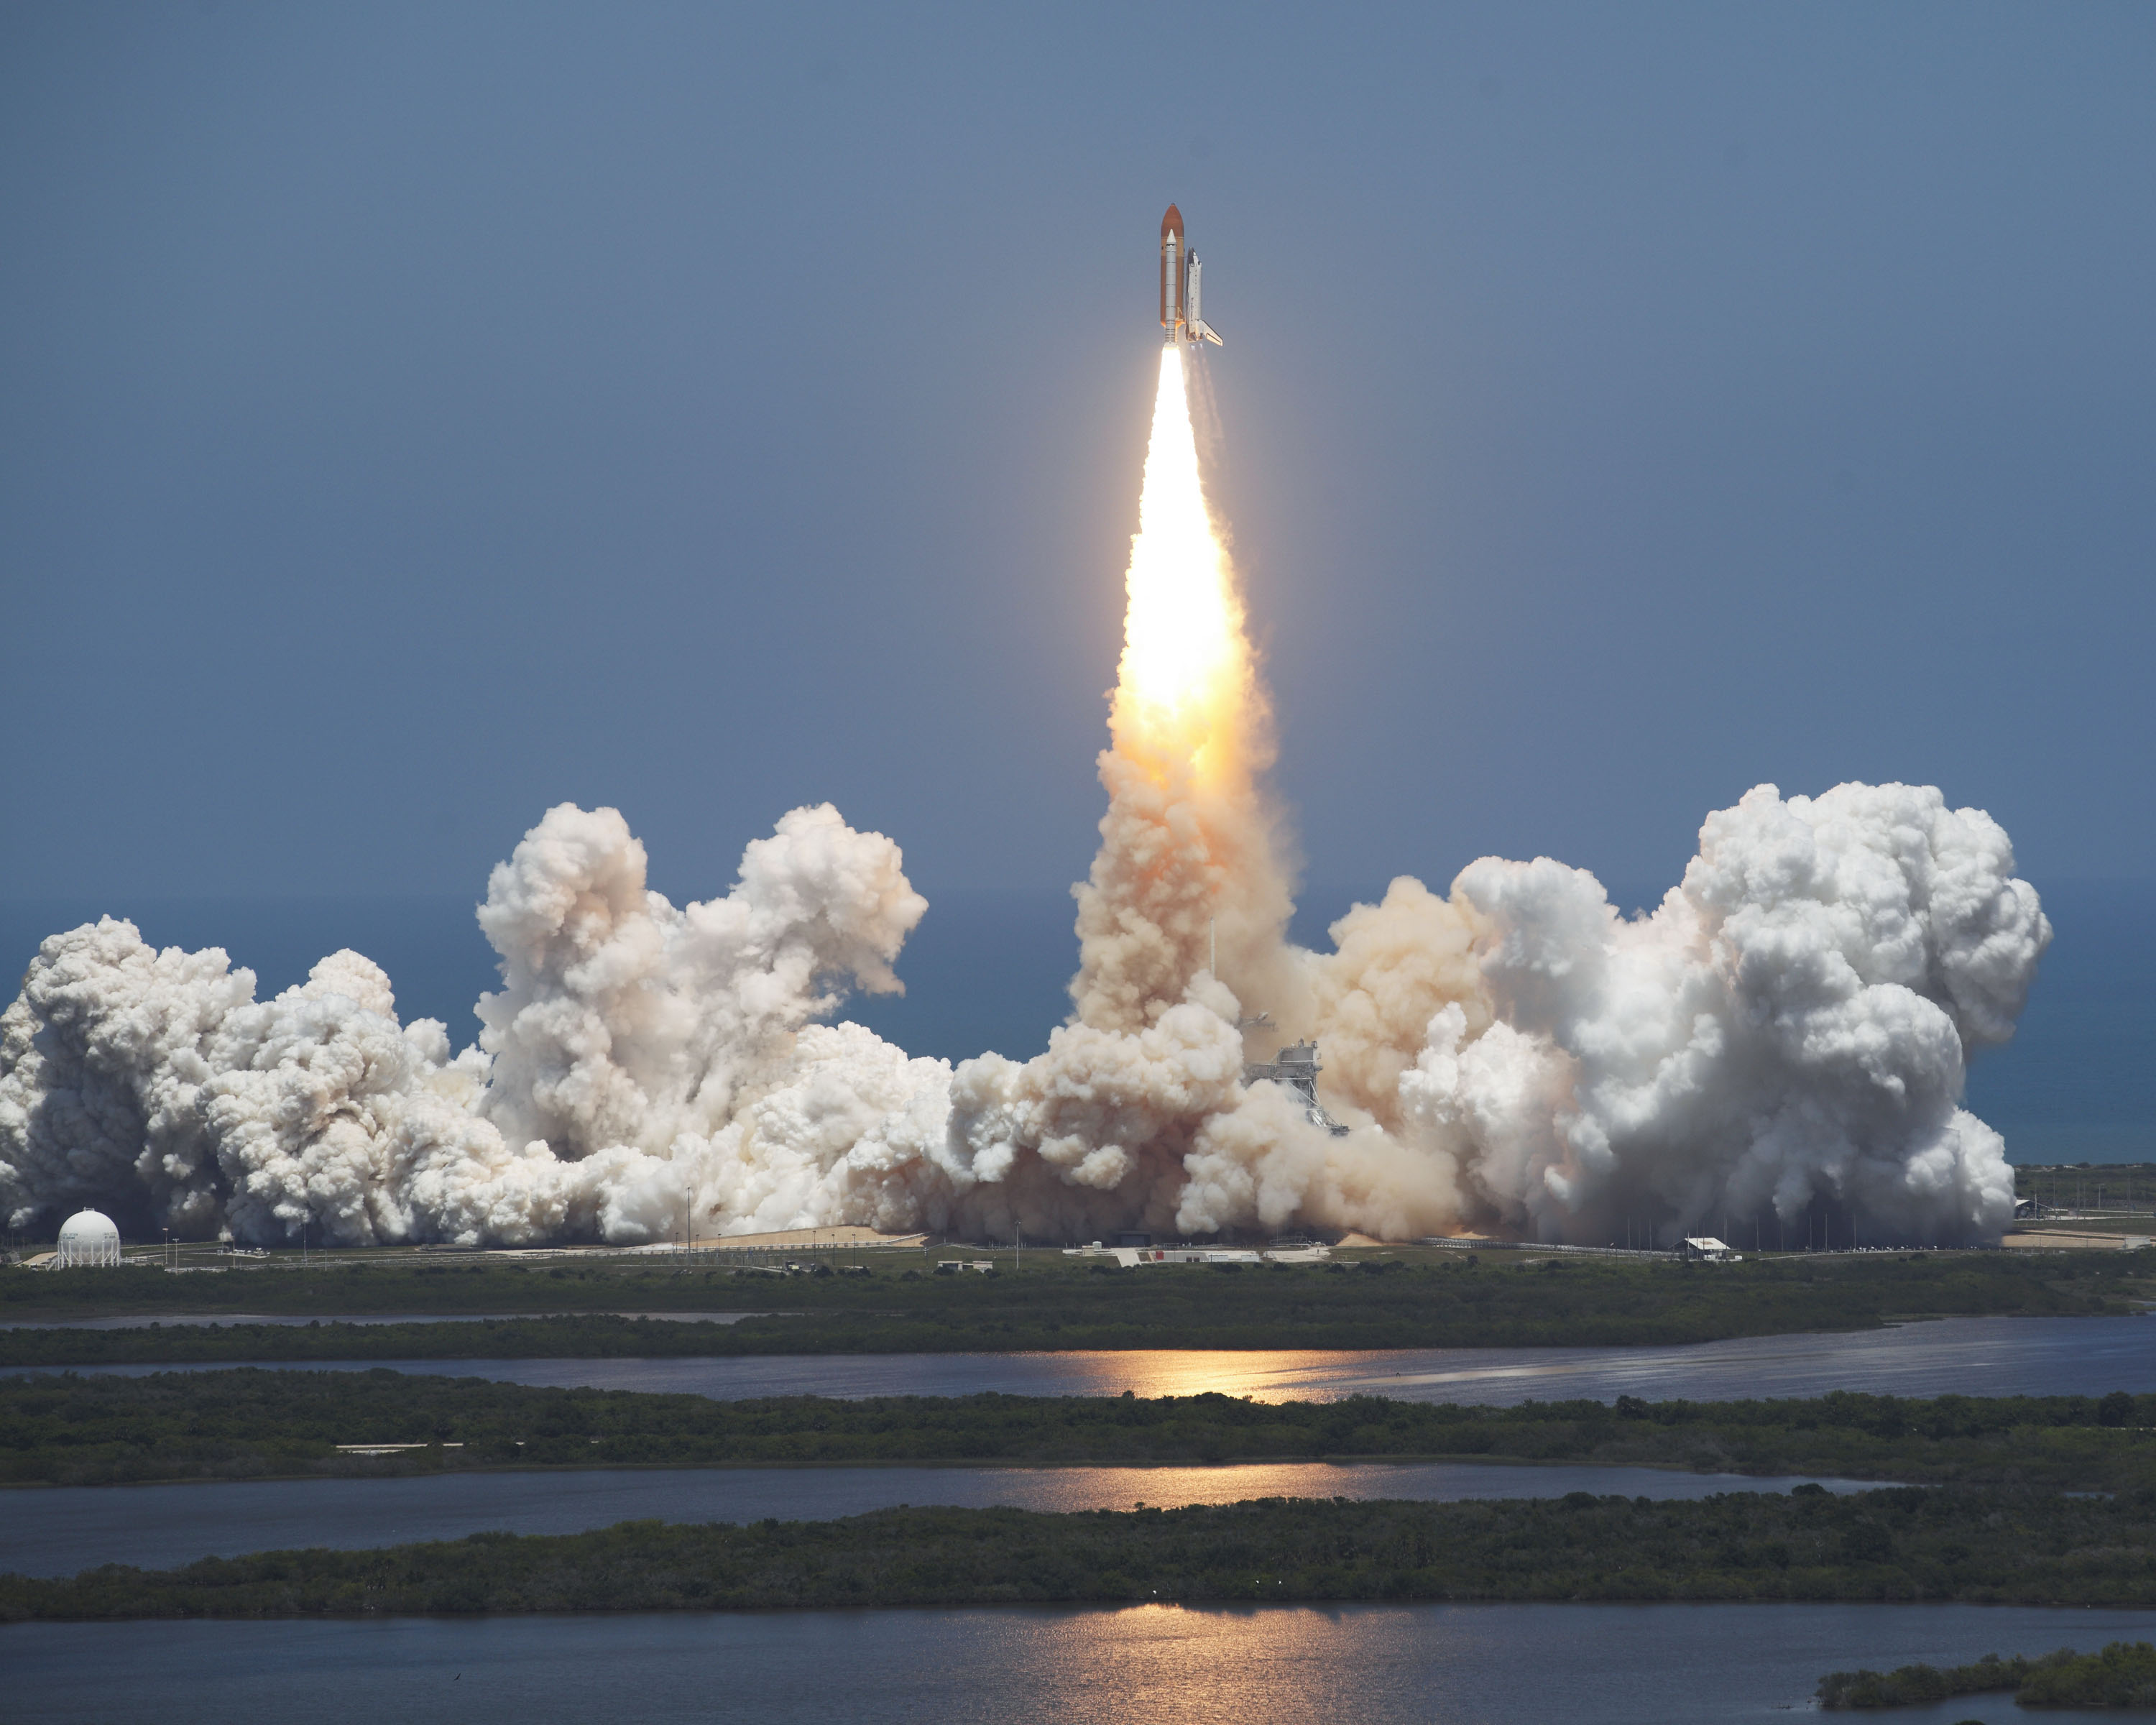 Photo 6 of 37, Space Shuttle Launches - NASA